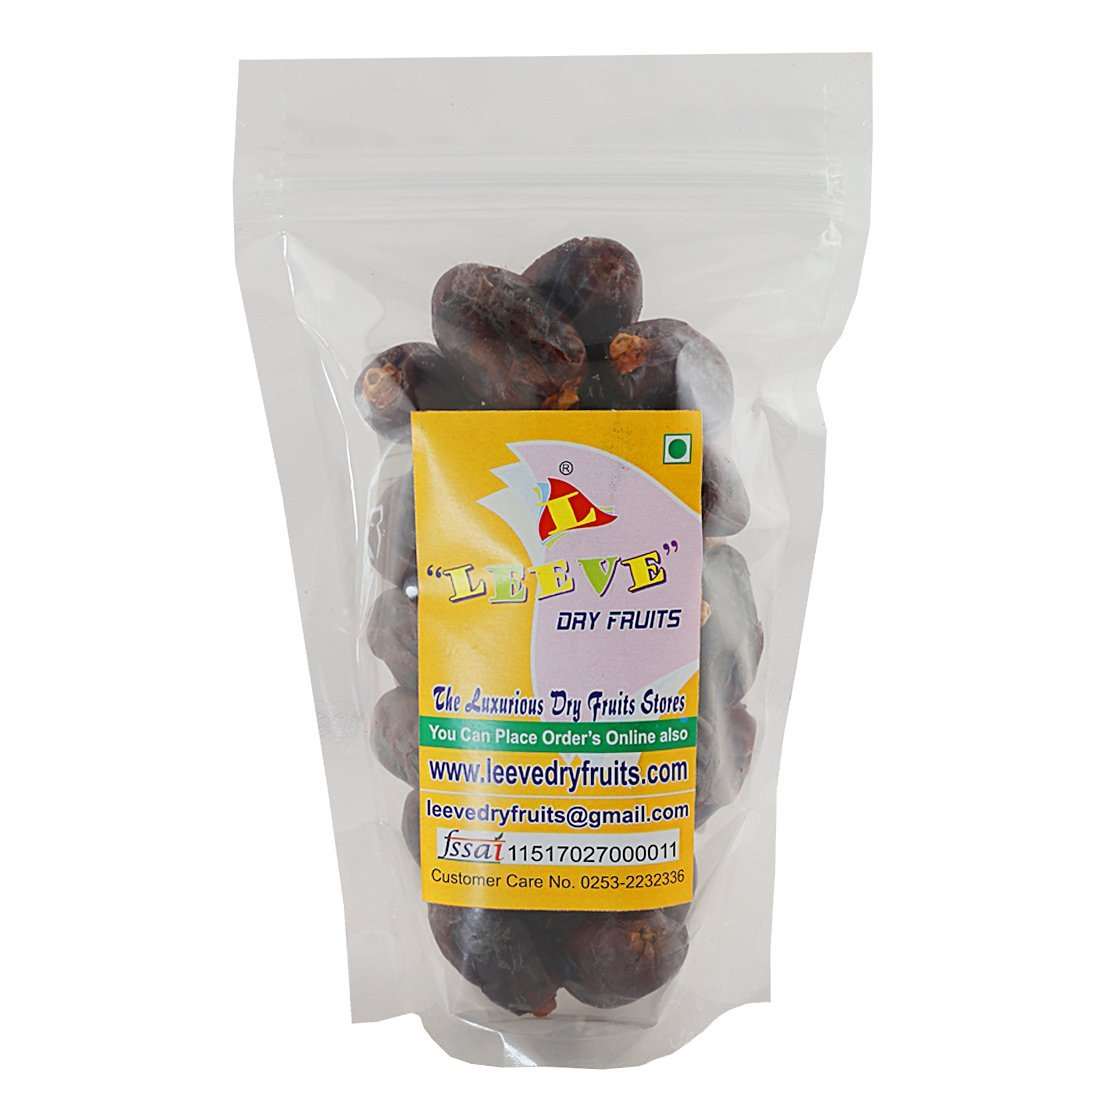 Leeve Dry Fruits Wet Dates Qatar Dates, 400 Gms by Leeve Dry Fruits (Image #4)